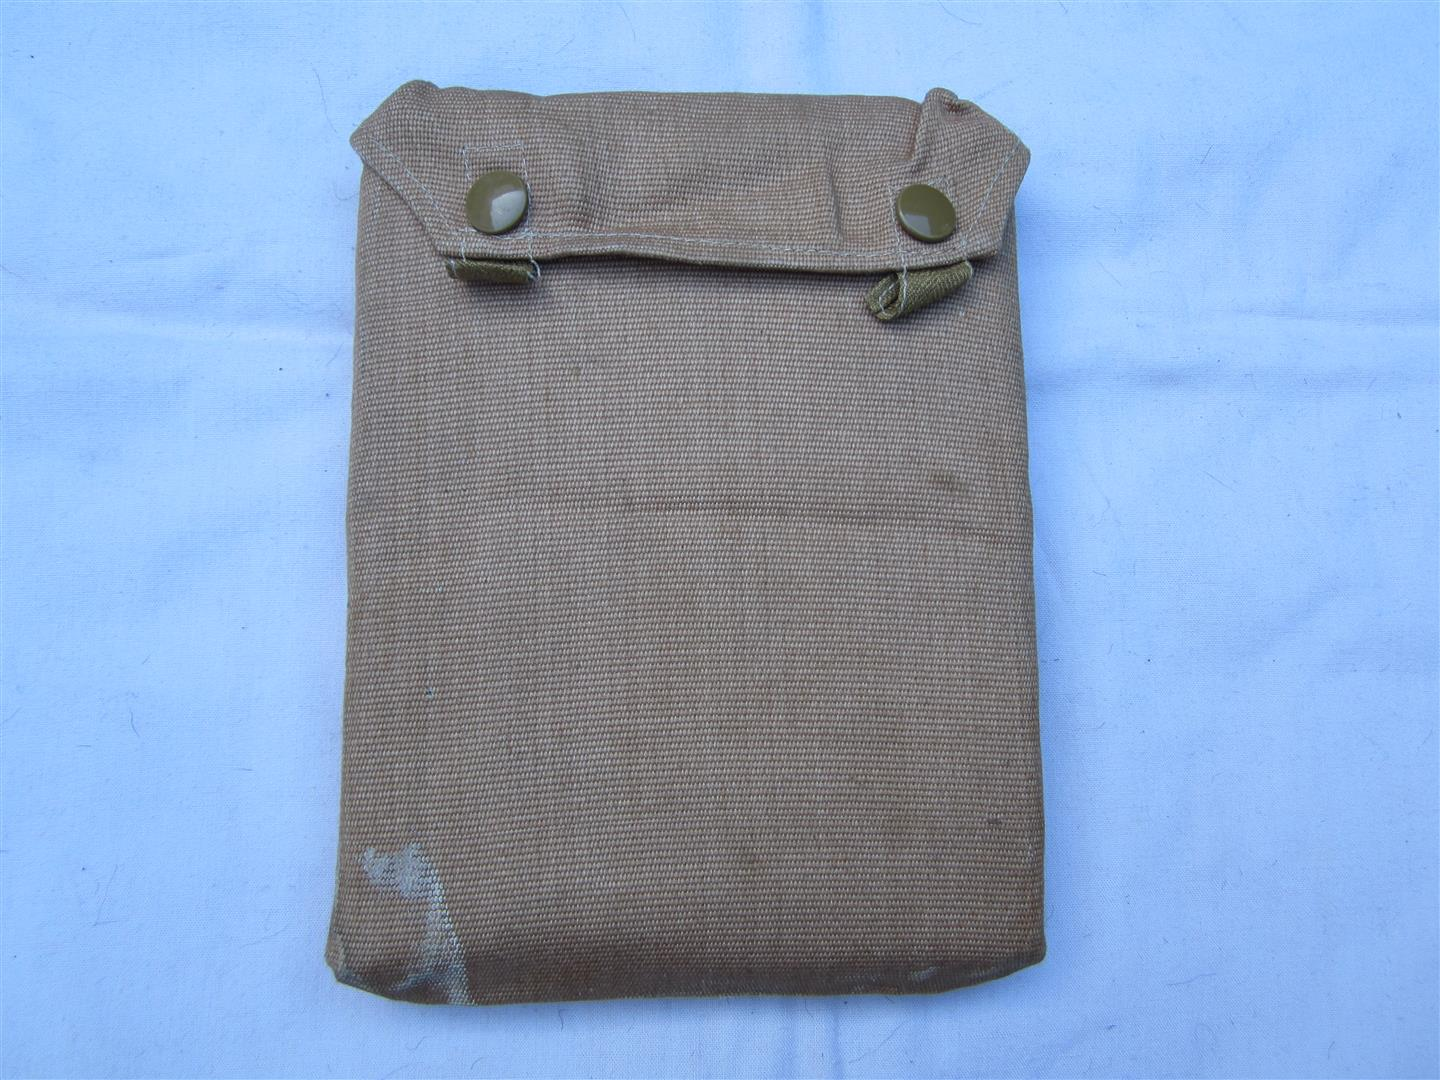 WW2 DAK Gascape & Bag